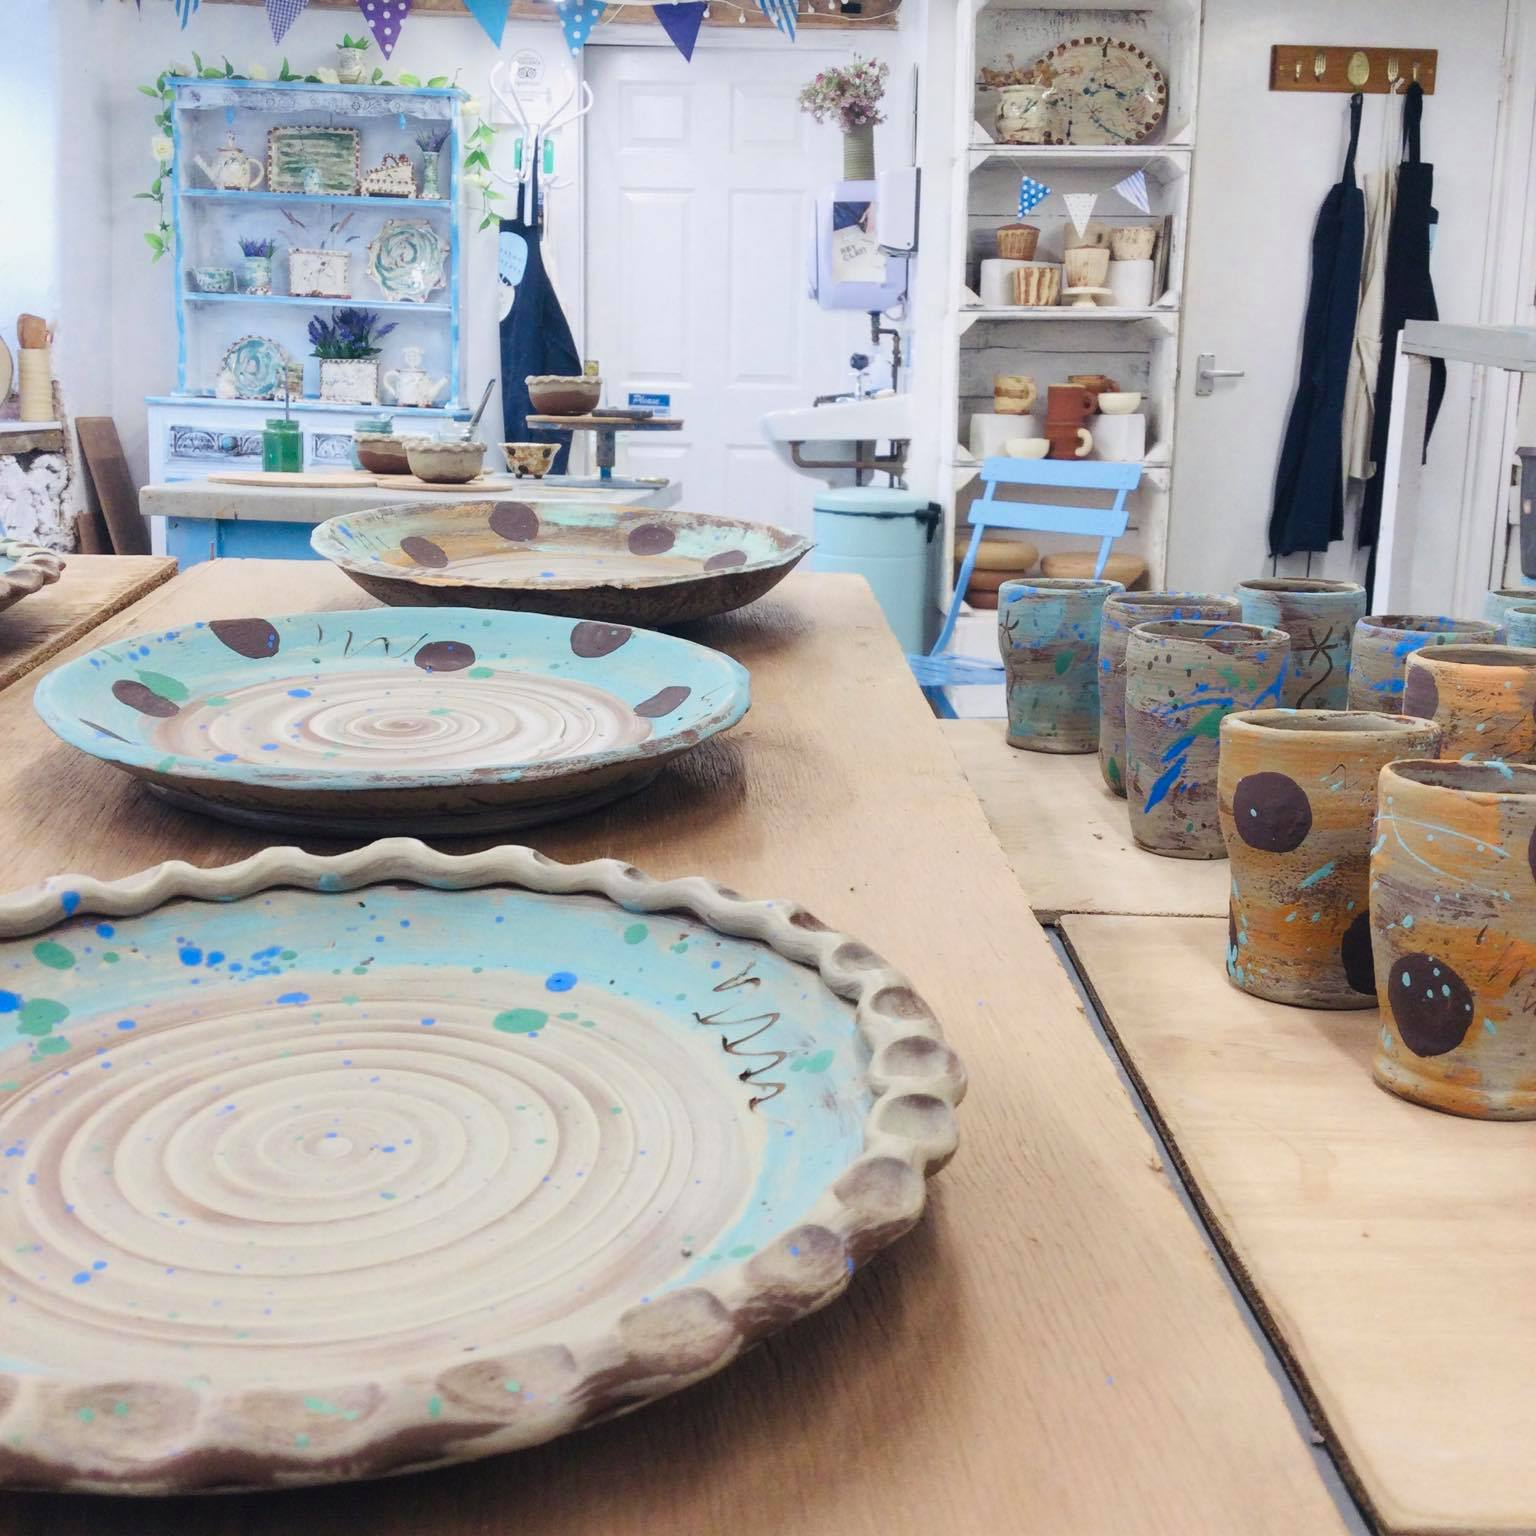 studio shot at Eastnor Pottery, work by Sarah Monk for Digital Craft Festival 2021